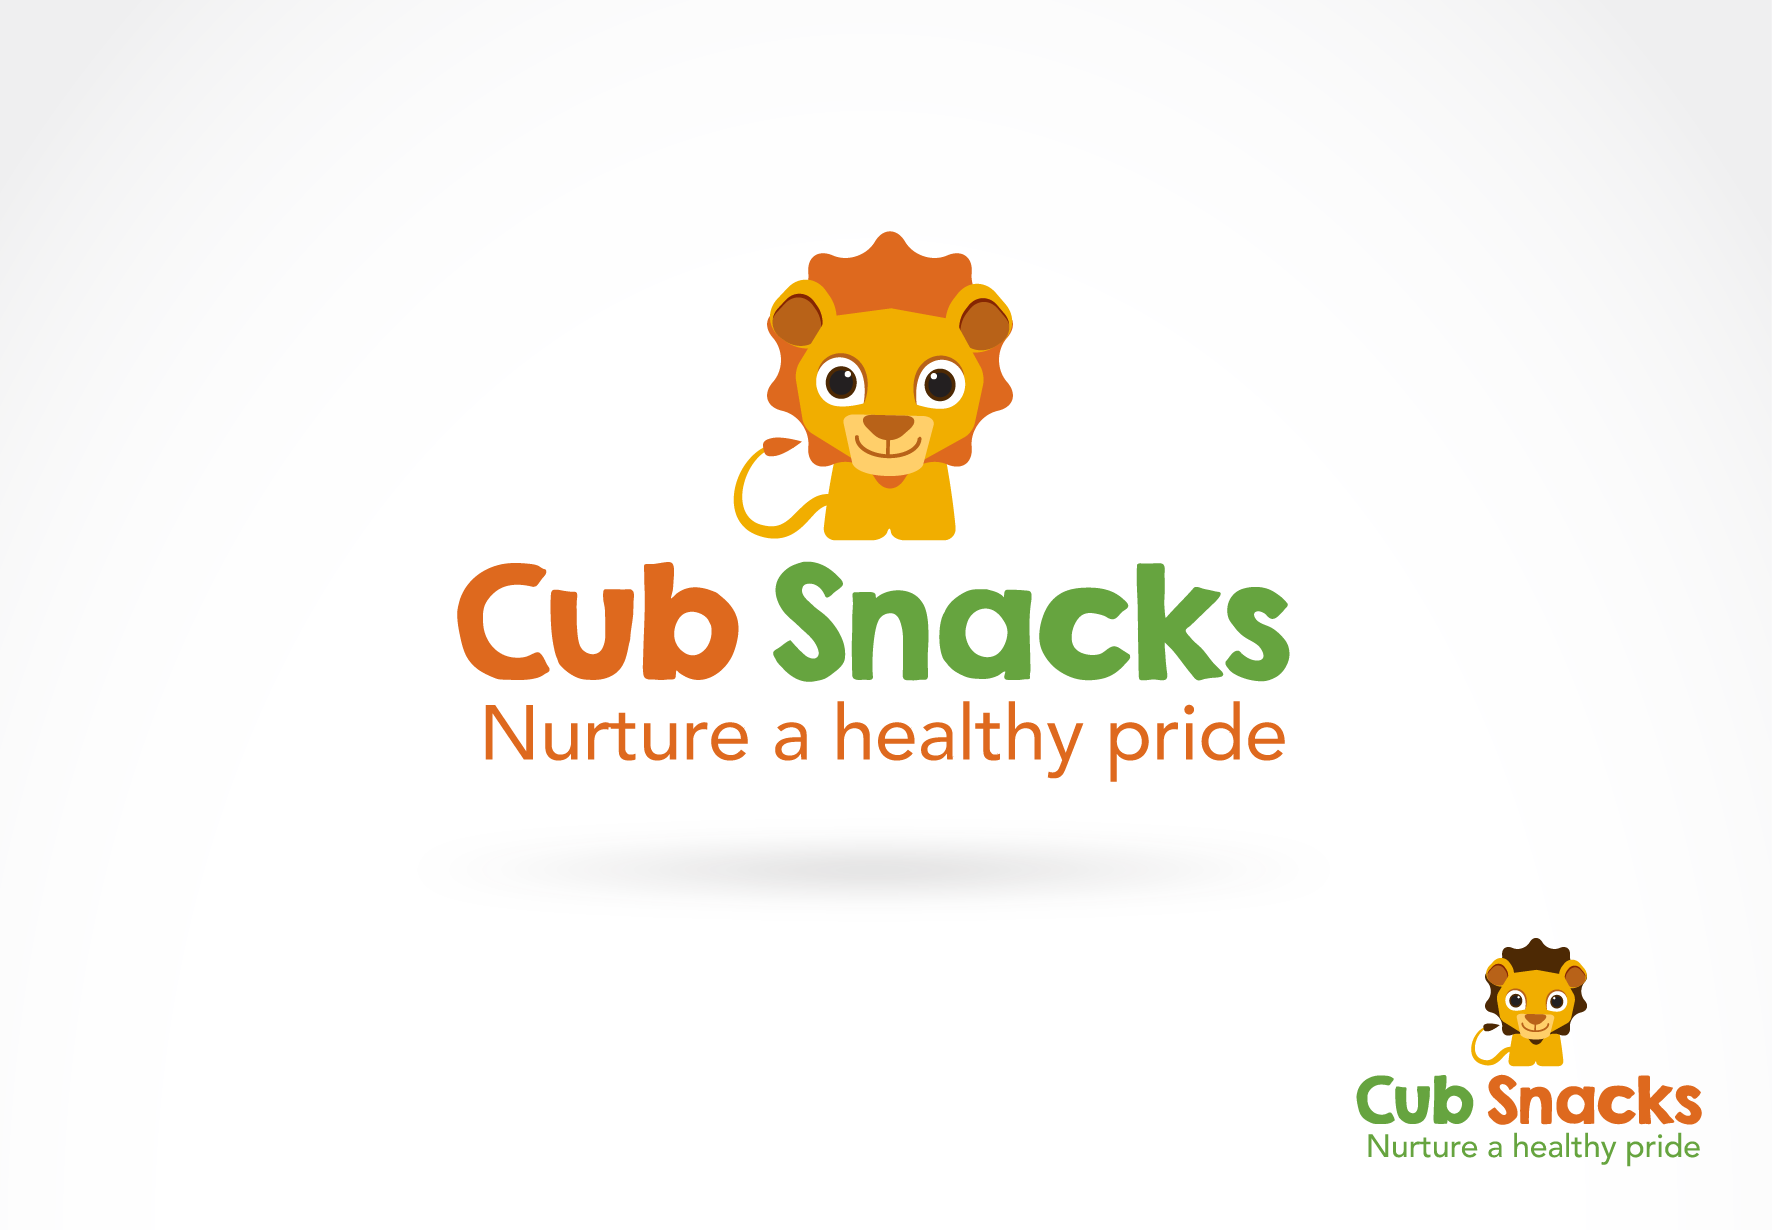 Create a fun, healthy and cute logo for a kid oriented food product